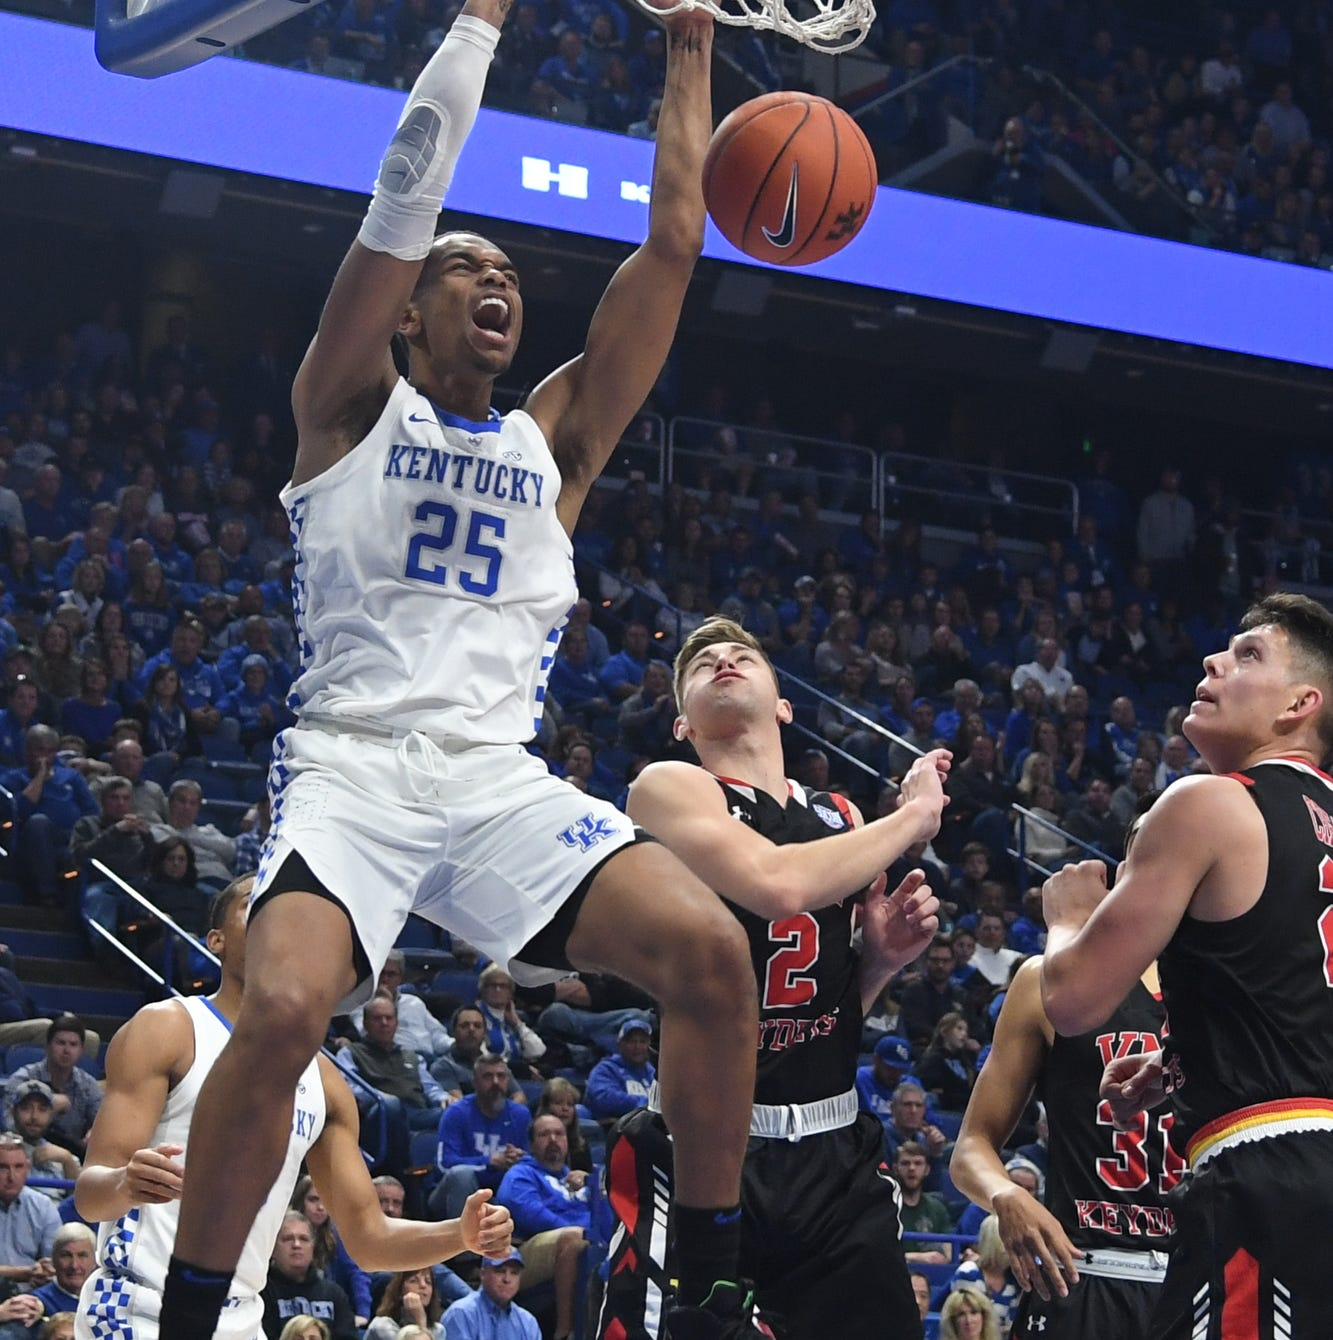 UK basketball holds off VMI behind dominating showing from big men